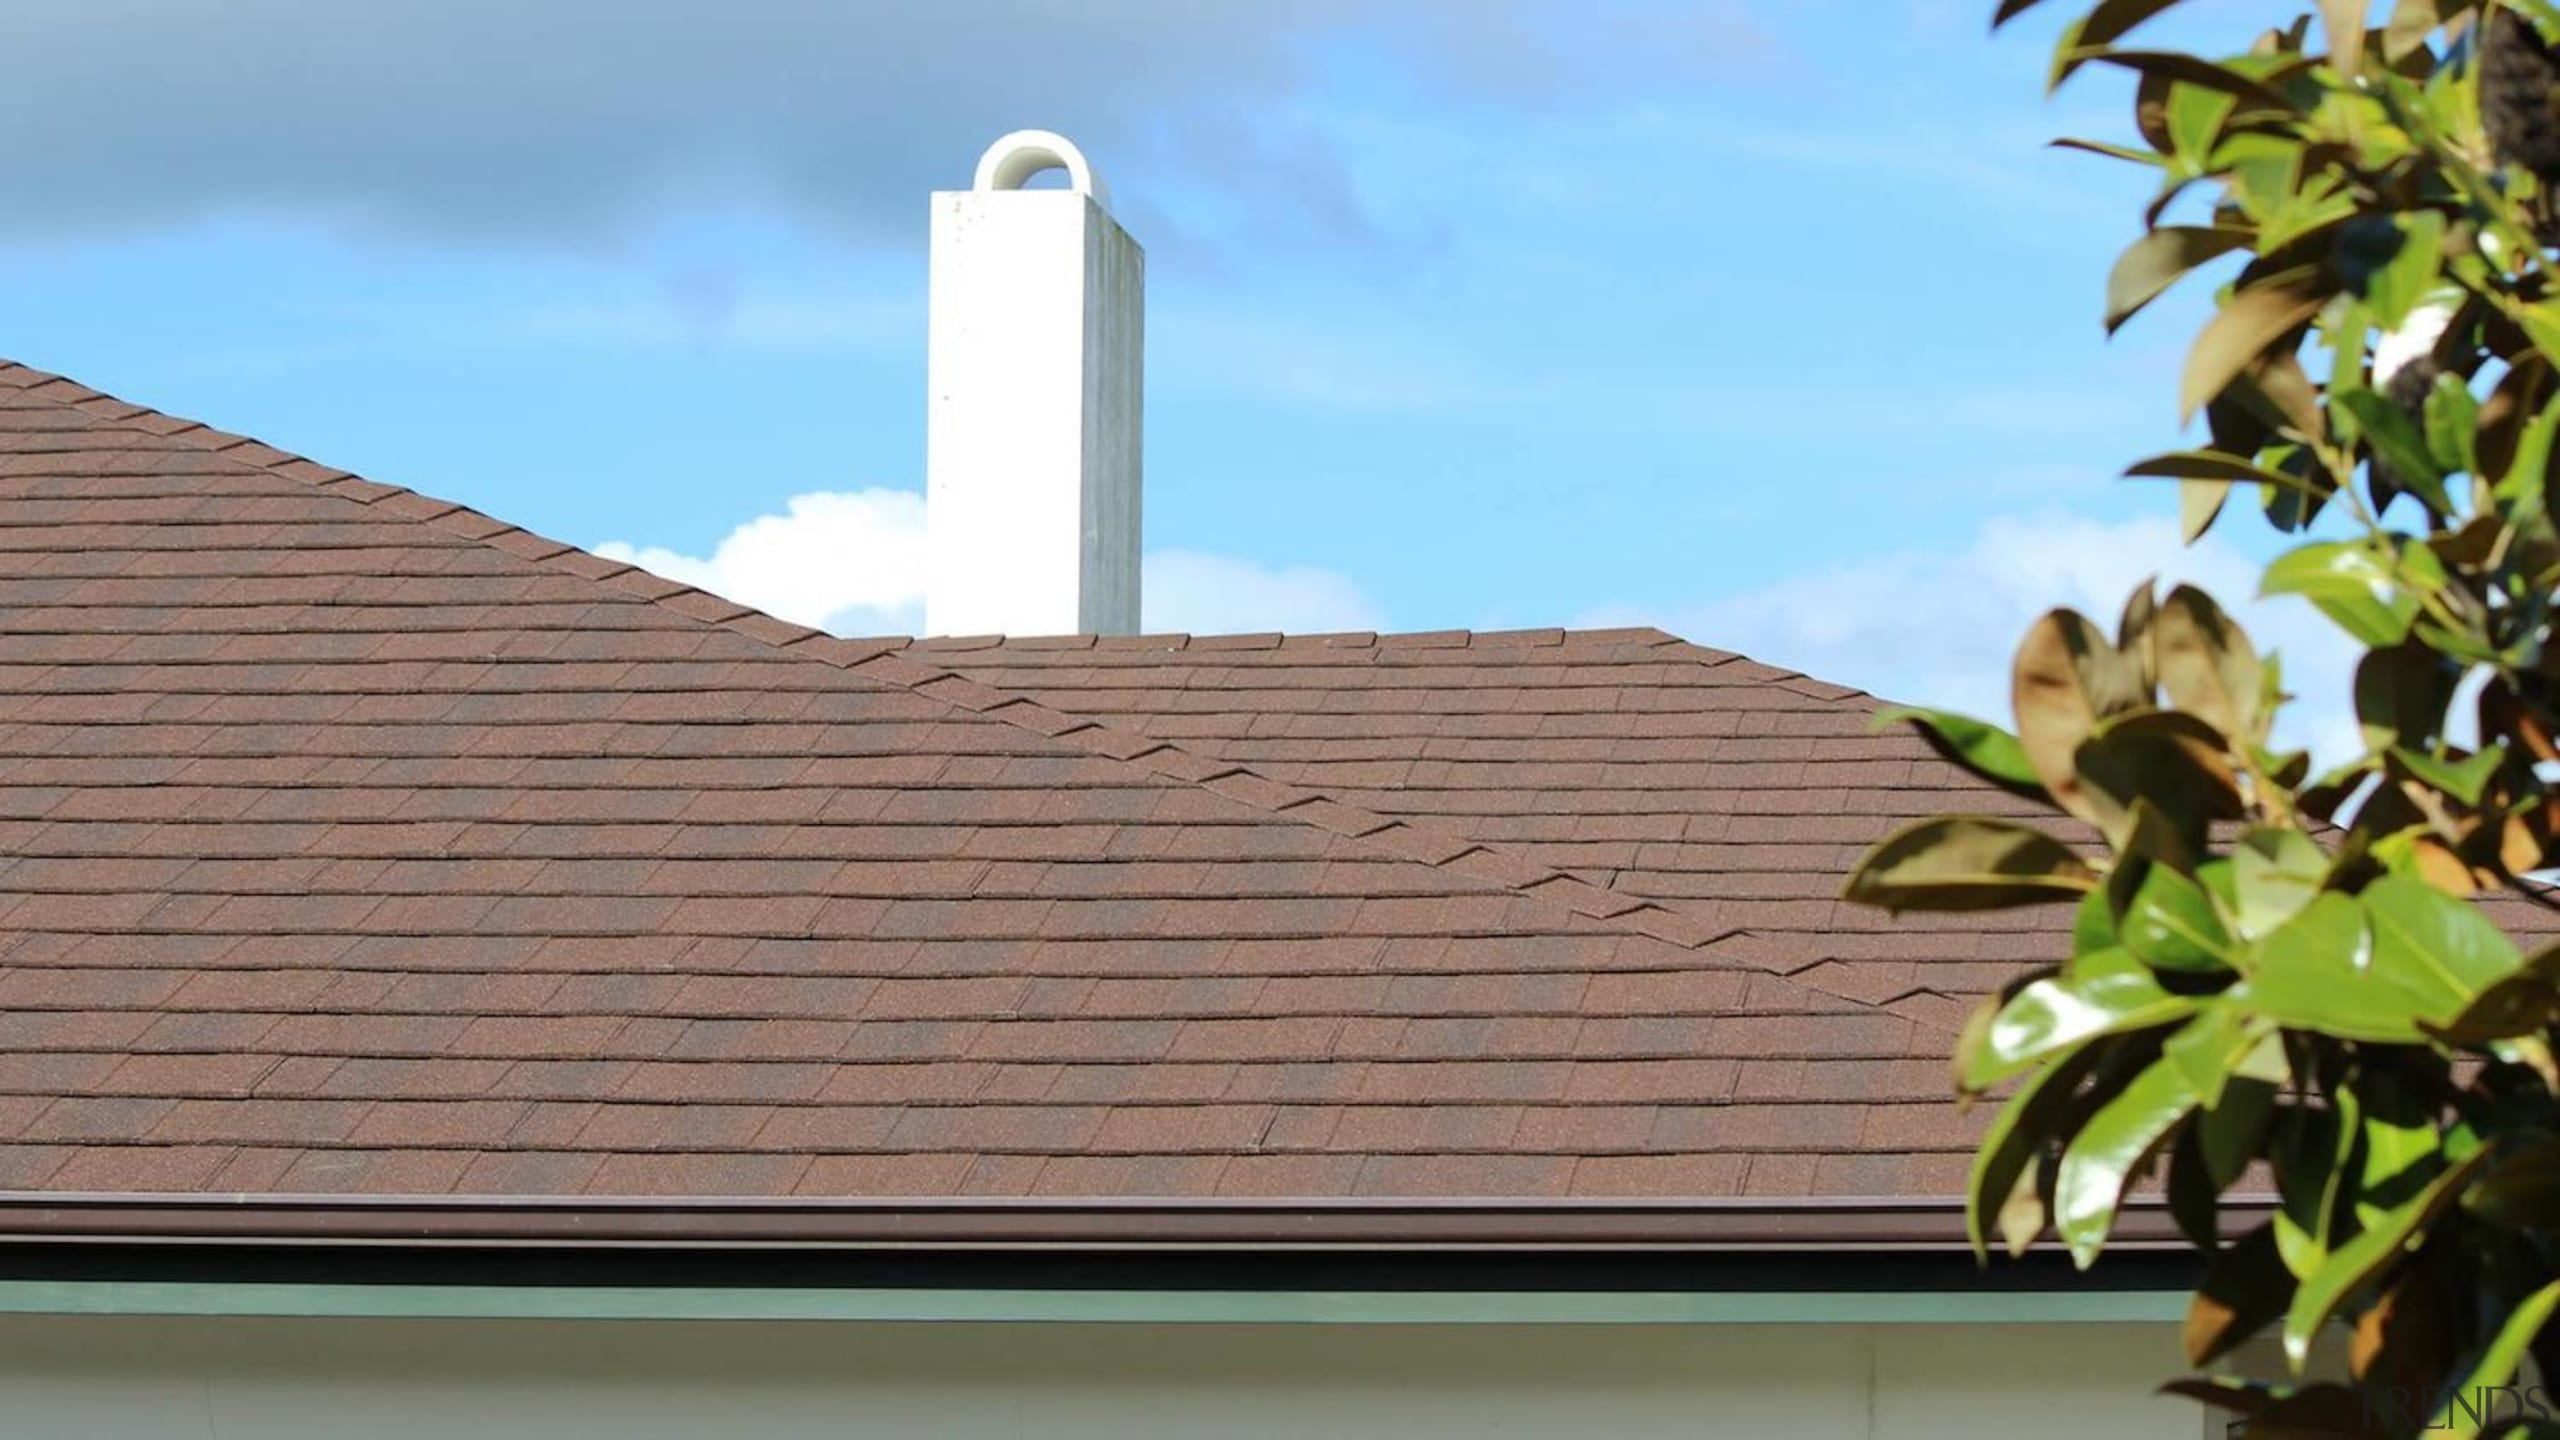 Re-roofing is key to a healthy home - daylighting, facade, outdoor structure, property, roof, sky, wall, brown, teal